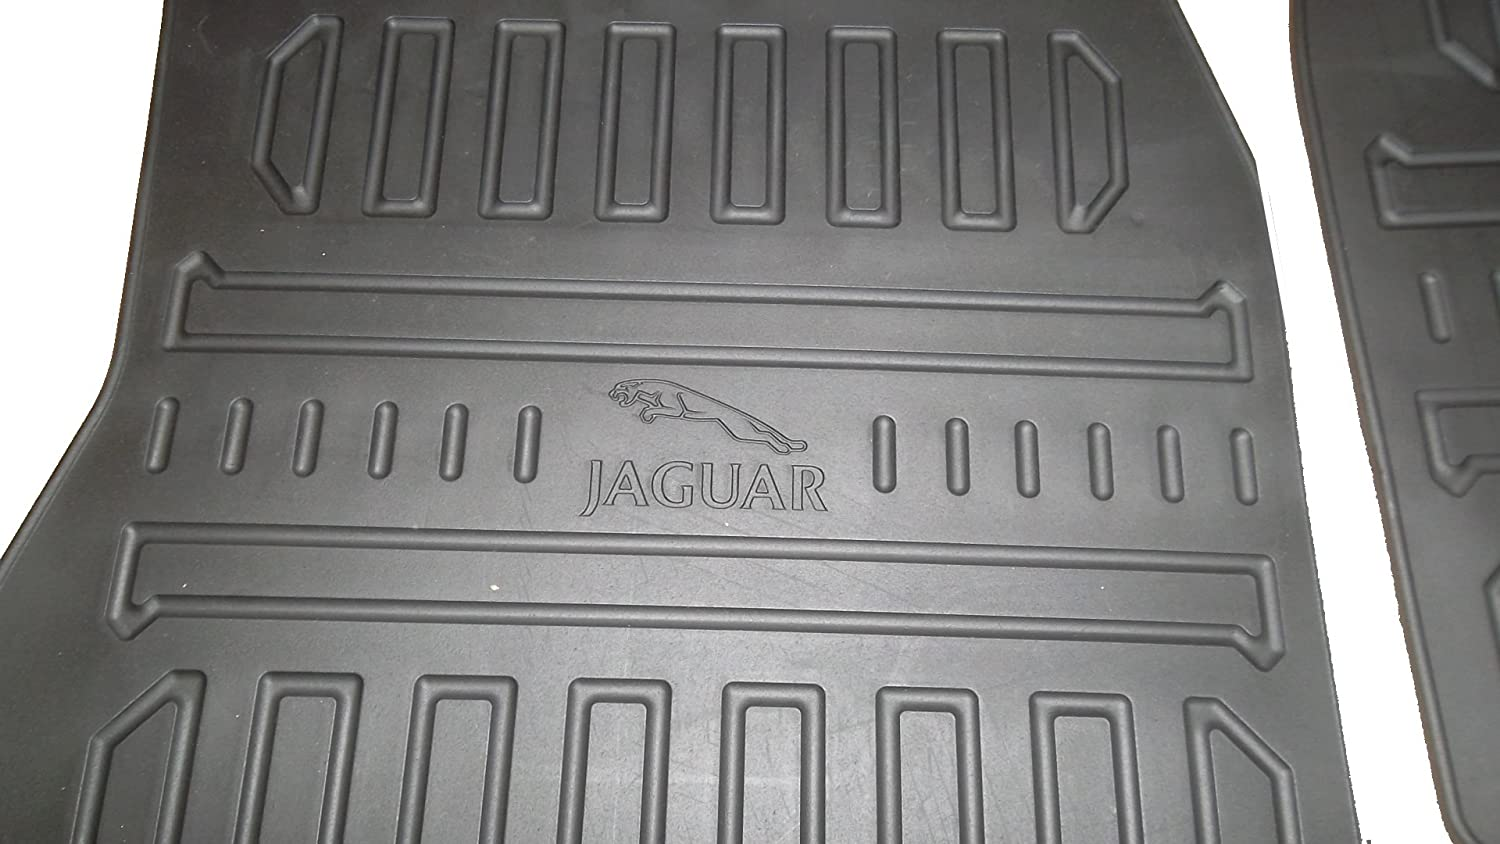 Rubber floor mats for jaguar xf - Rubber Floor Mats For Jaguar Xf 12